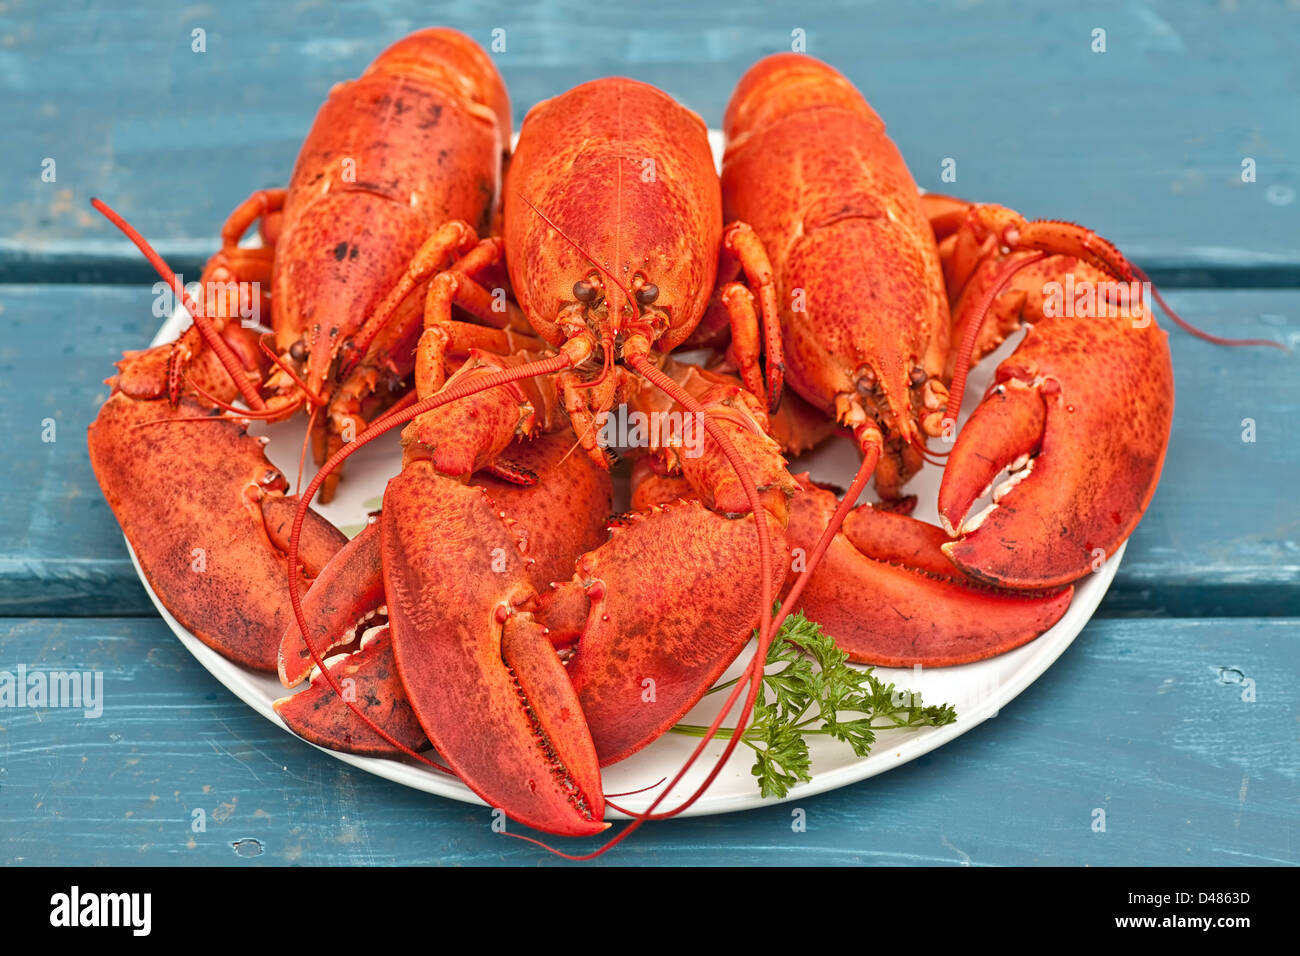 Seafood Platter With Lobster Stock Photos & Seafood ...